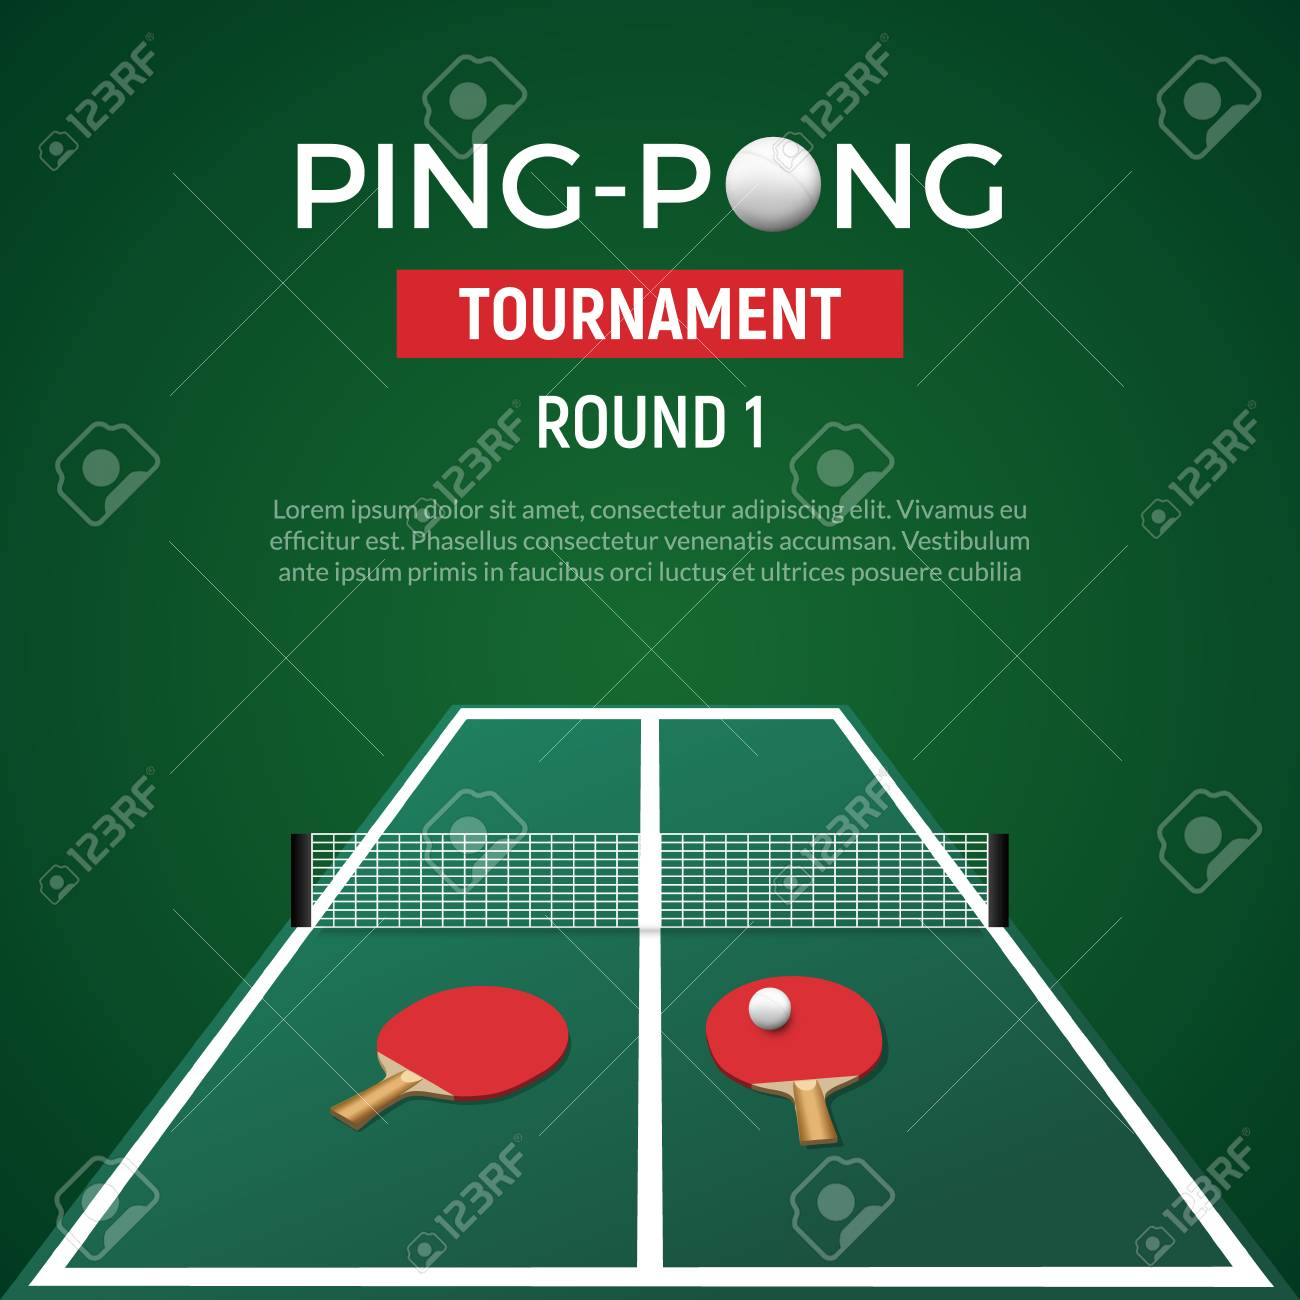 ping pont tennis tournament poster background table tennis with